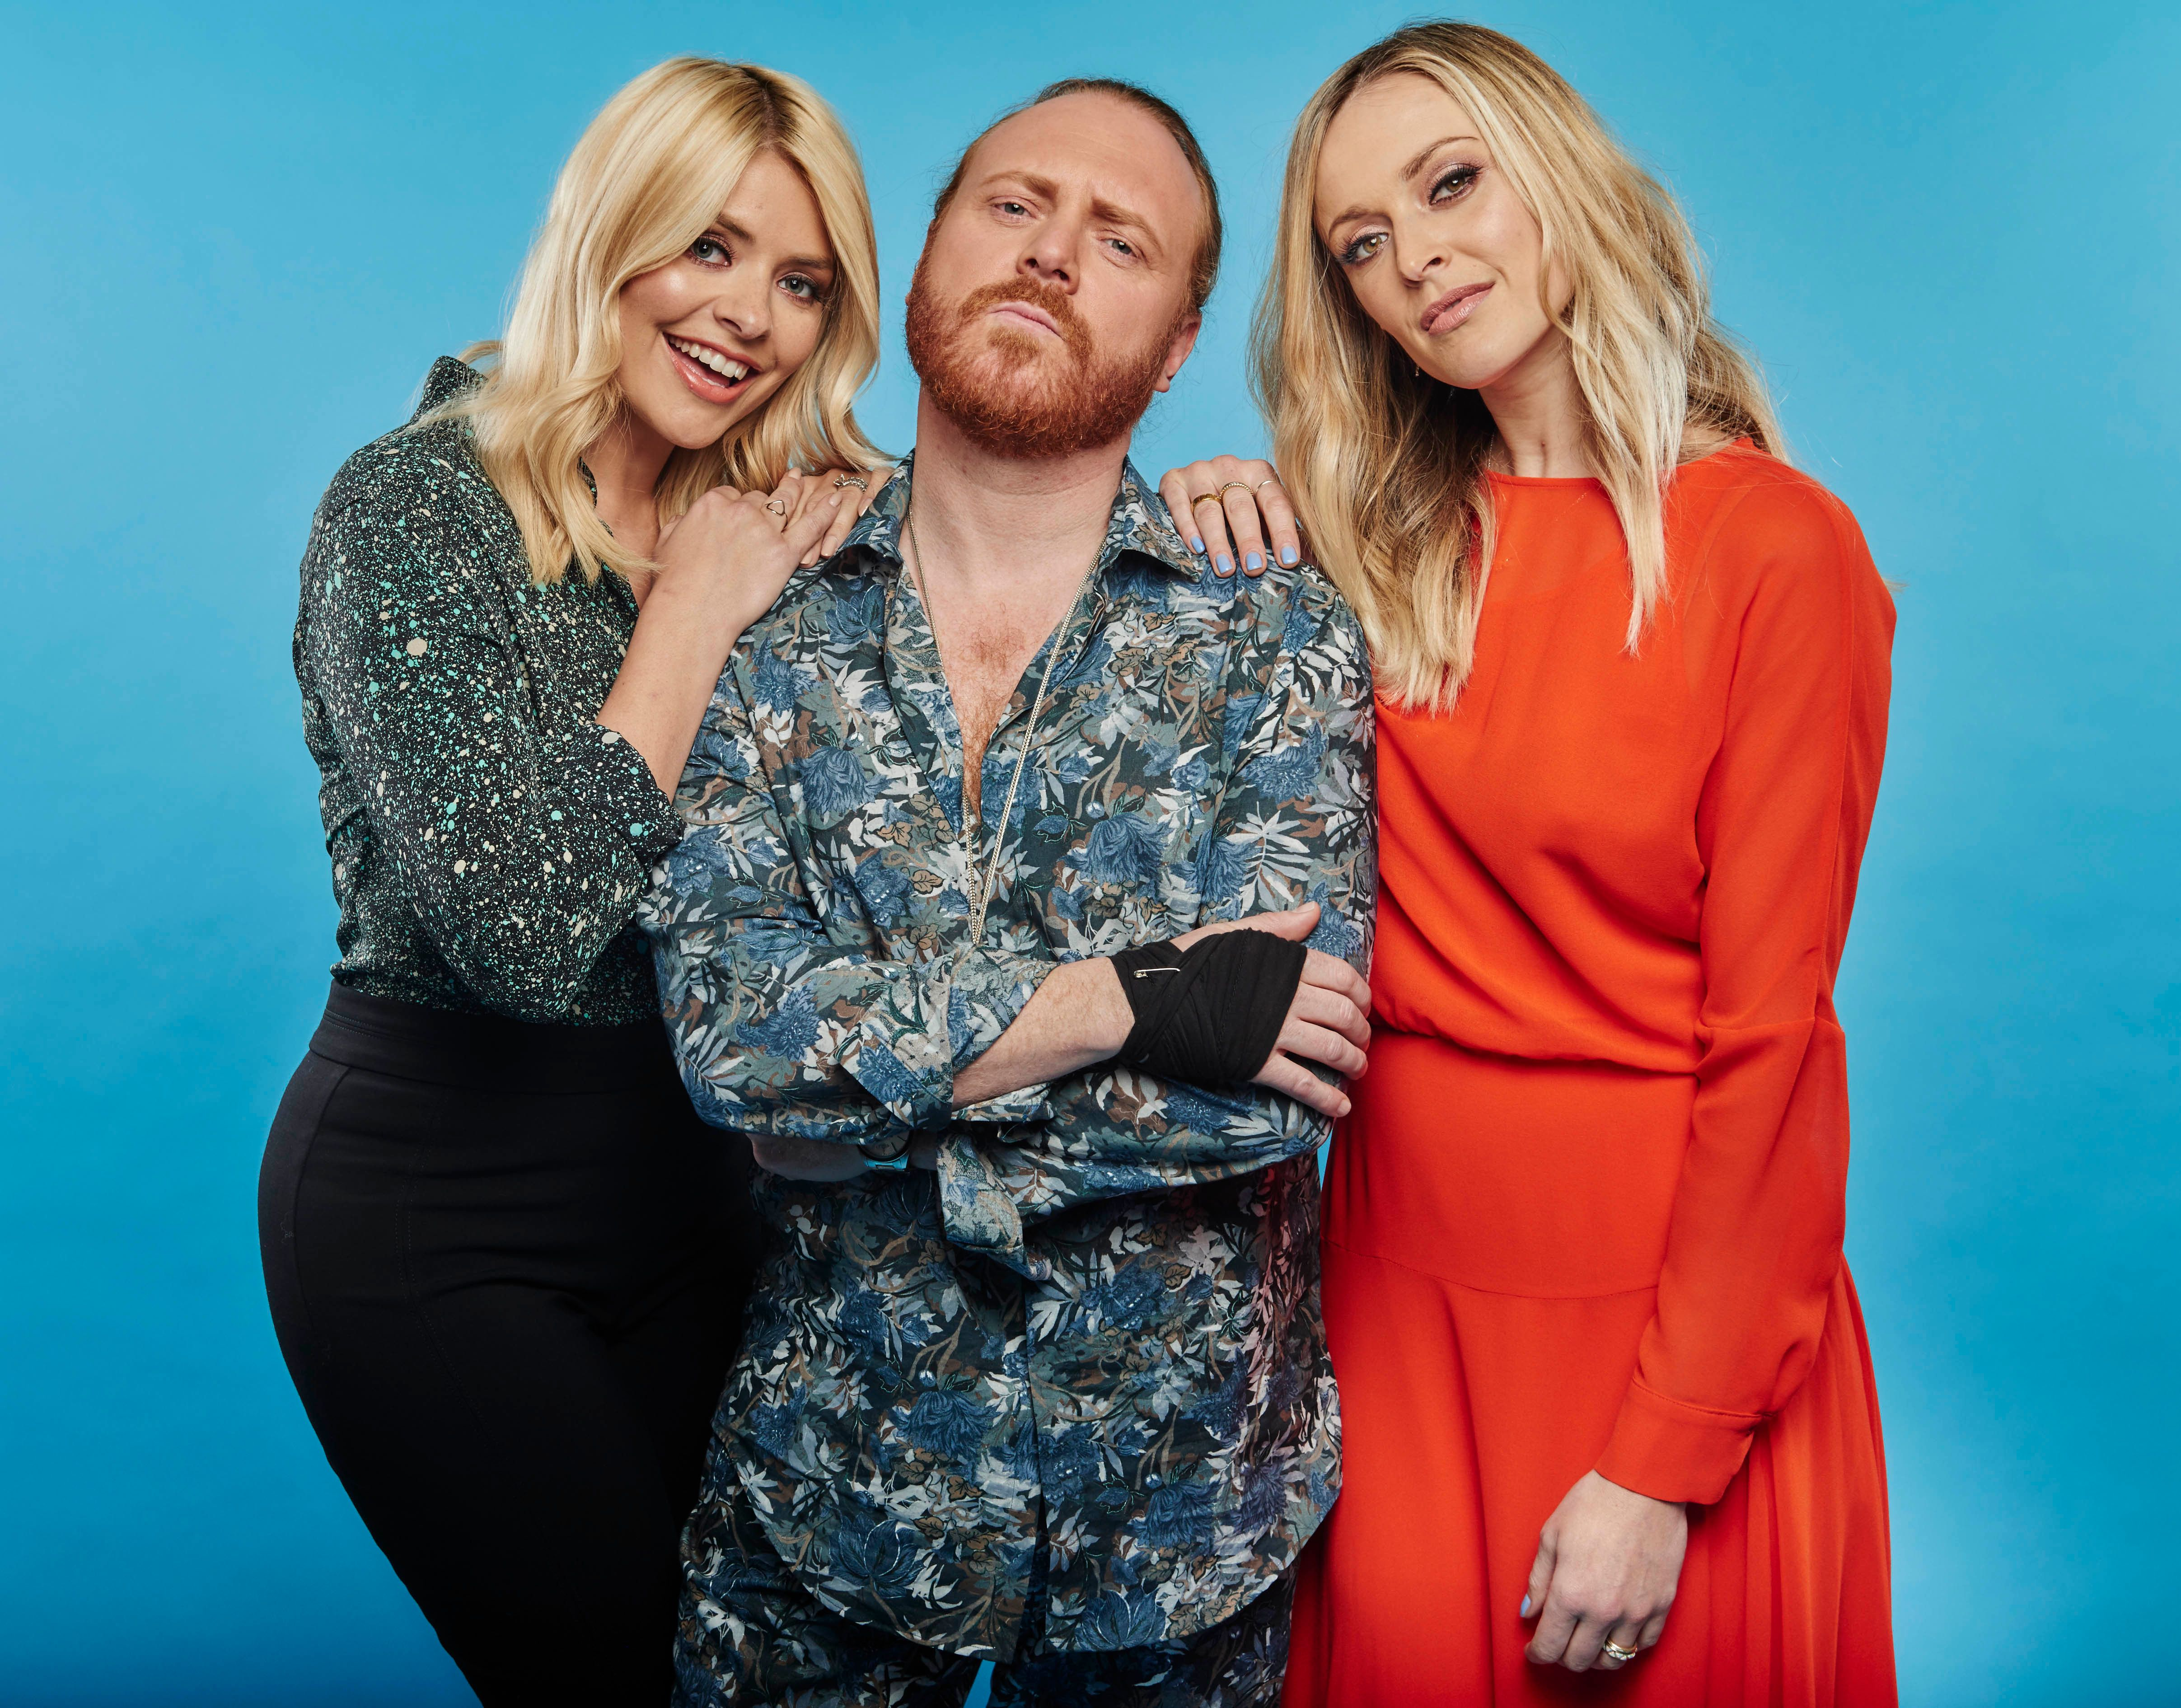 Keith with his 'Celebrity Juice' co-stars Holly Willoughby and Fearne